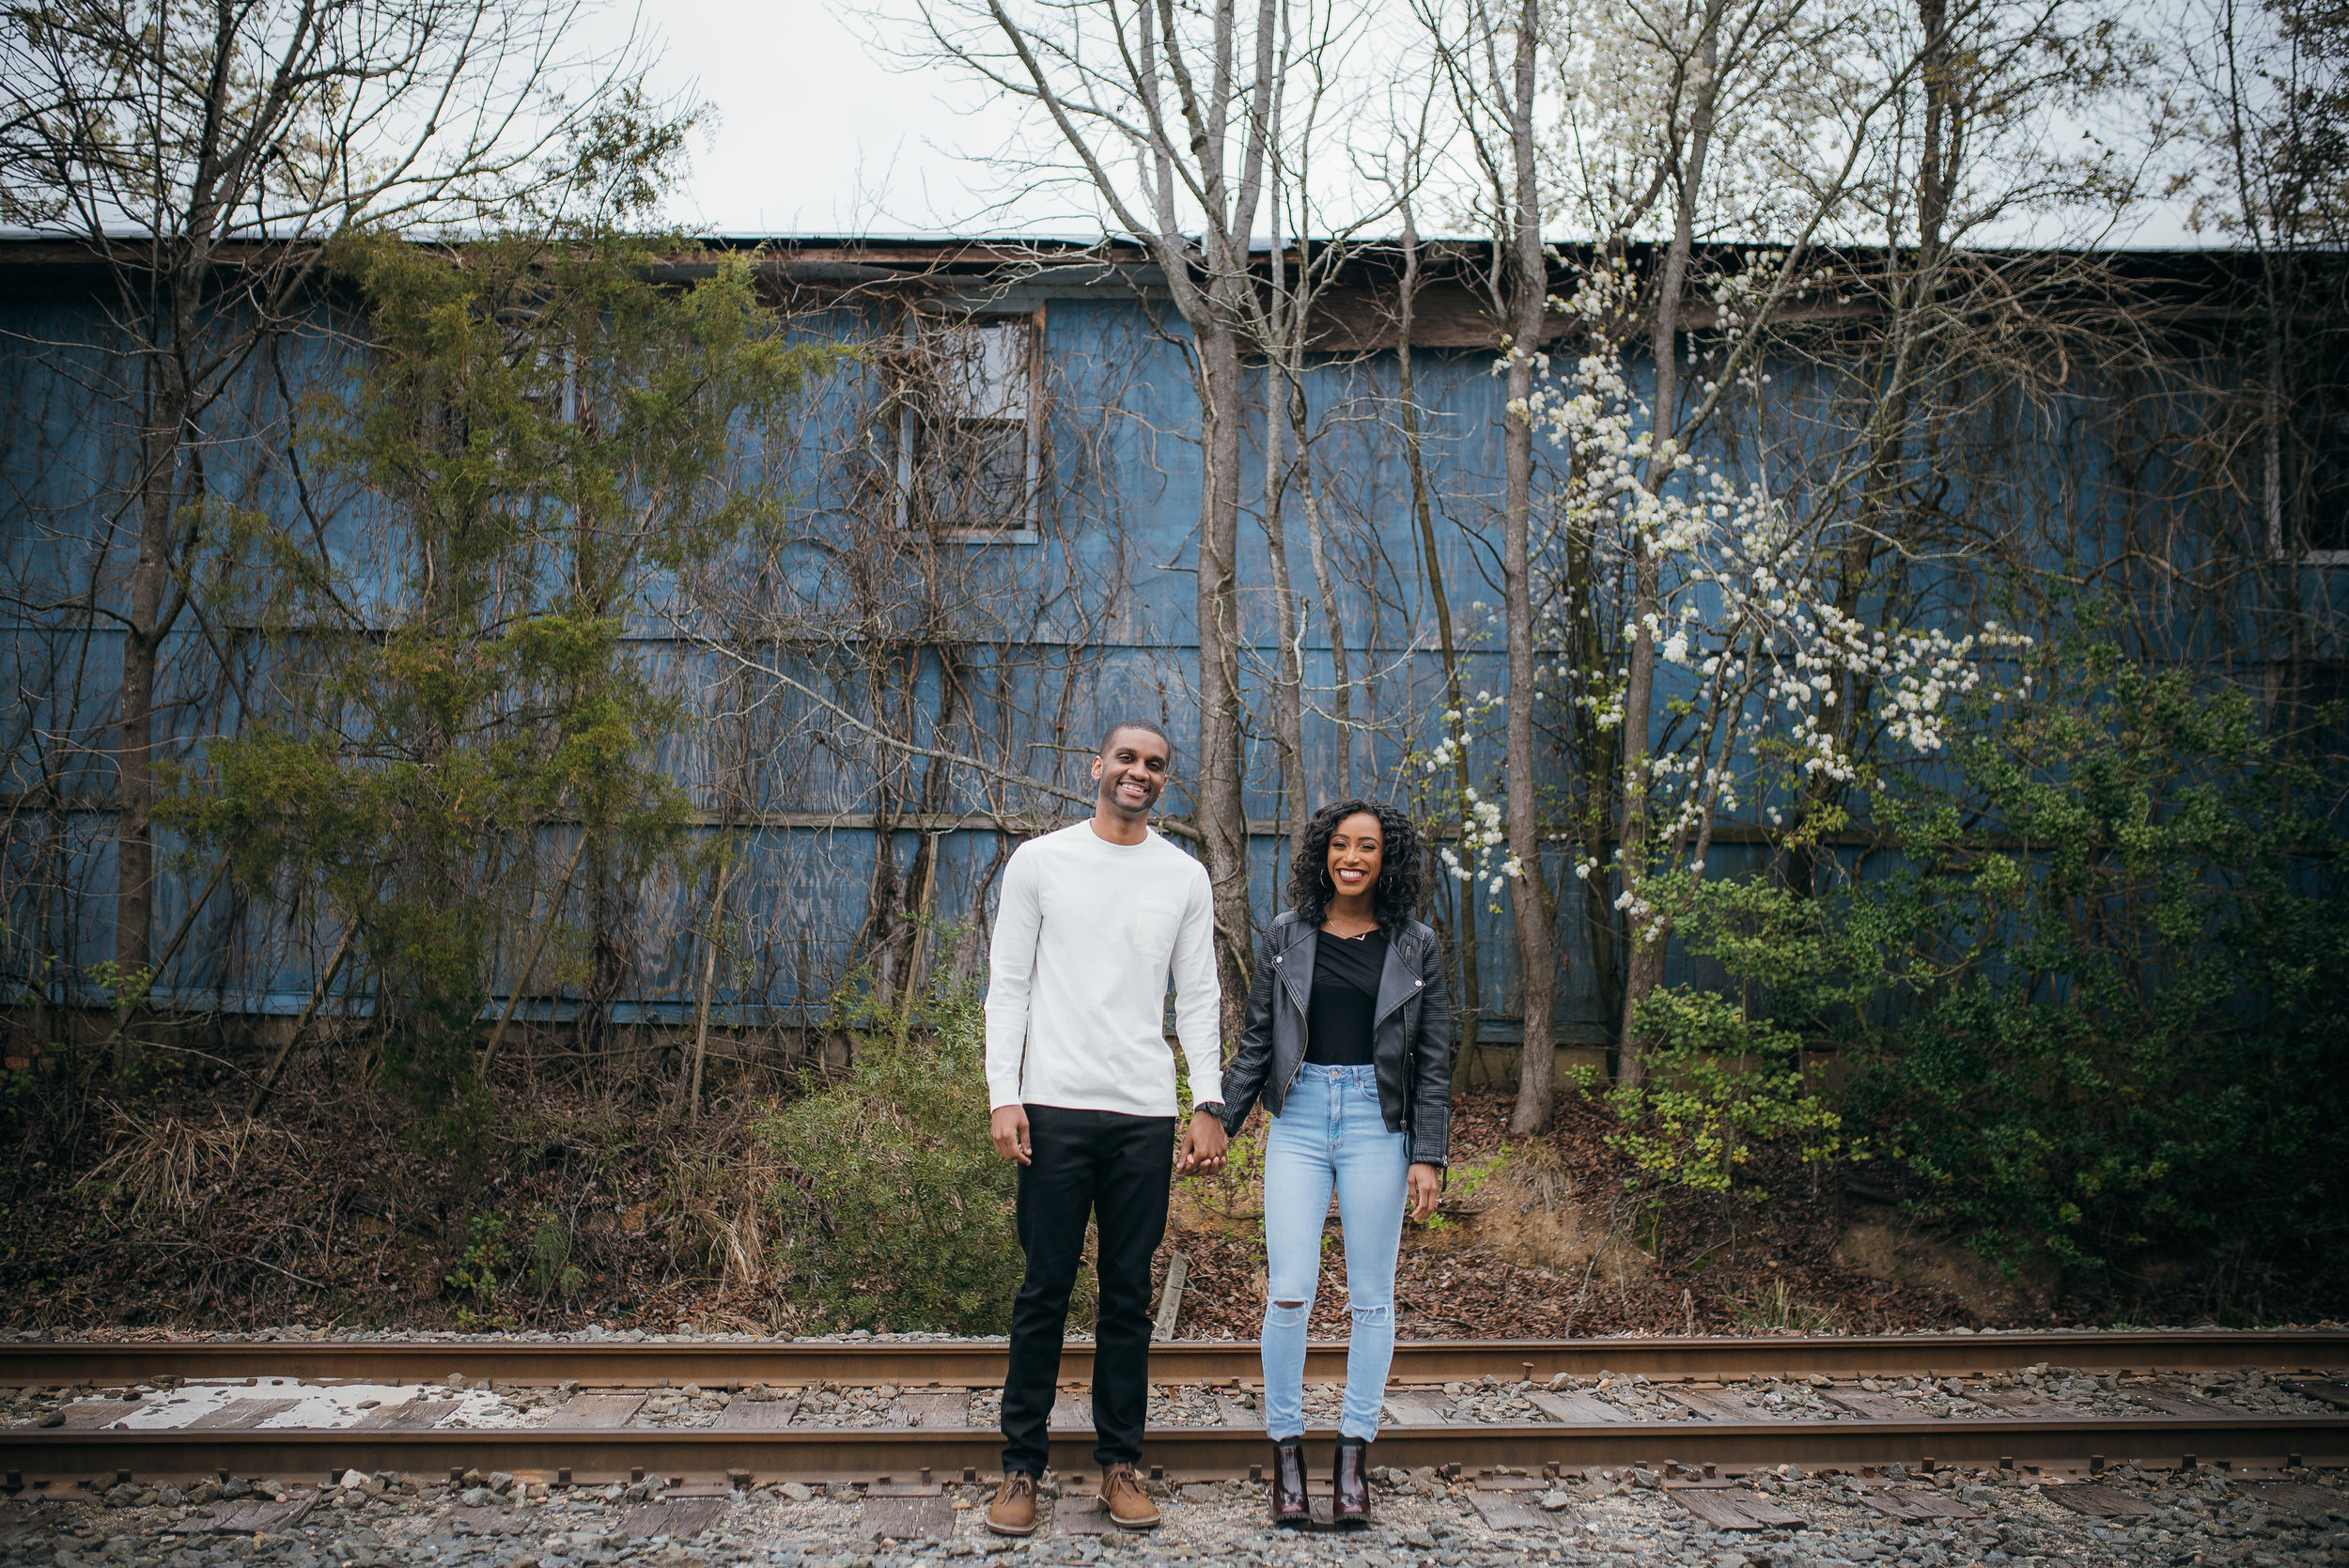 carrboro engagement session - chapel hill wedding photographer - north carolina wedding photographer